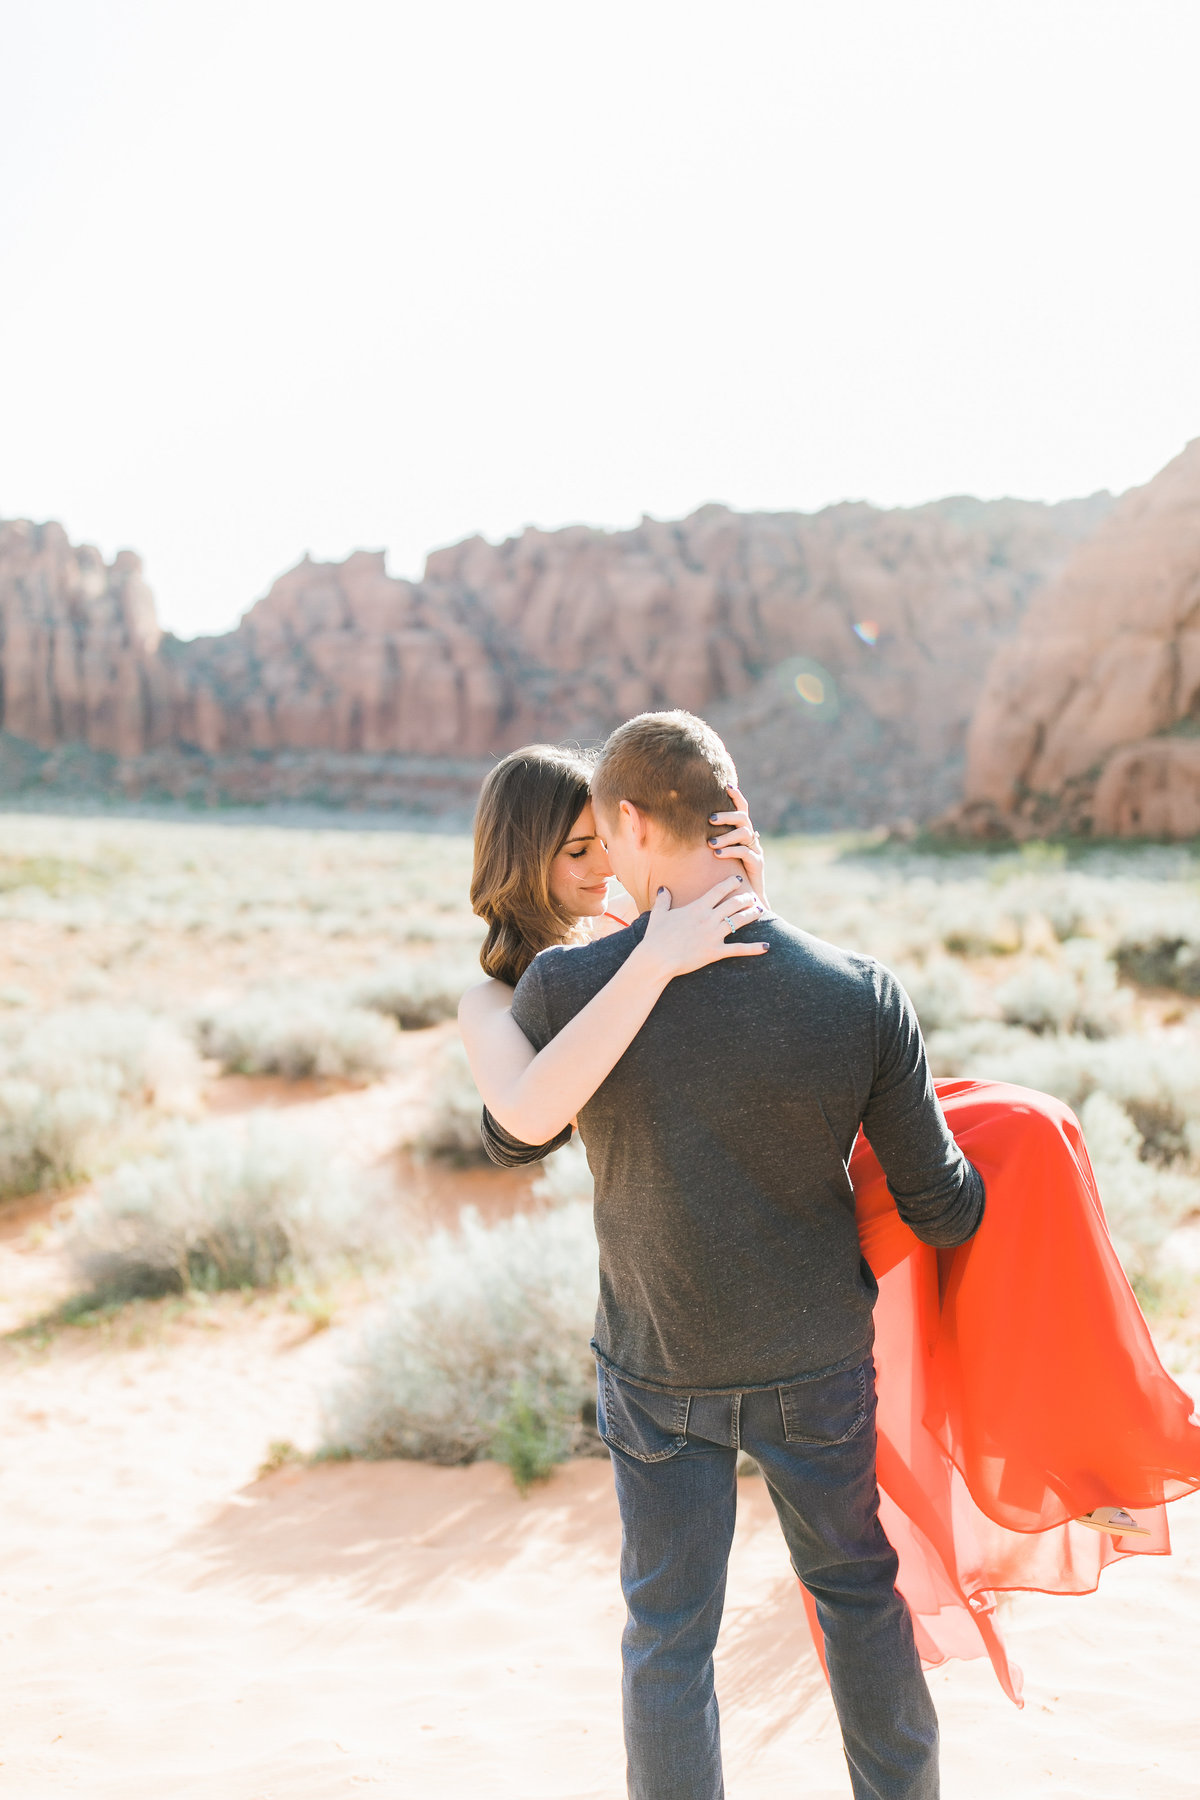 SnowCanyonAnniversarySession_LisaZach_CatherineRhodesPhotography-226-Edit